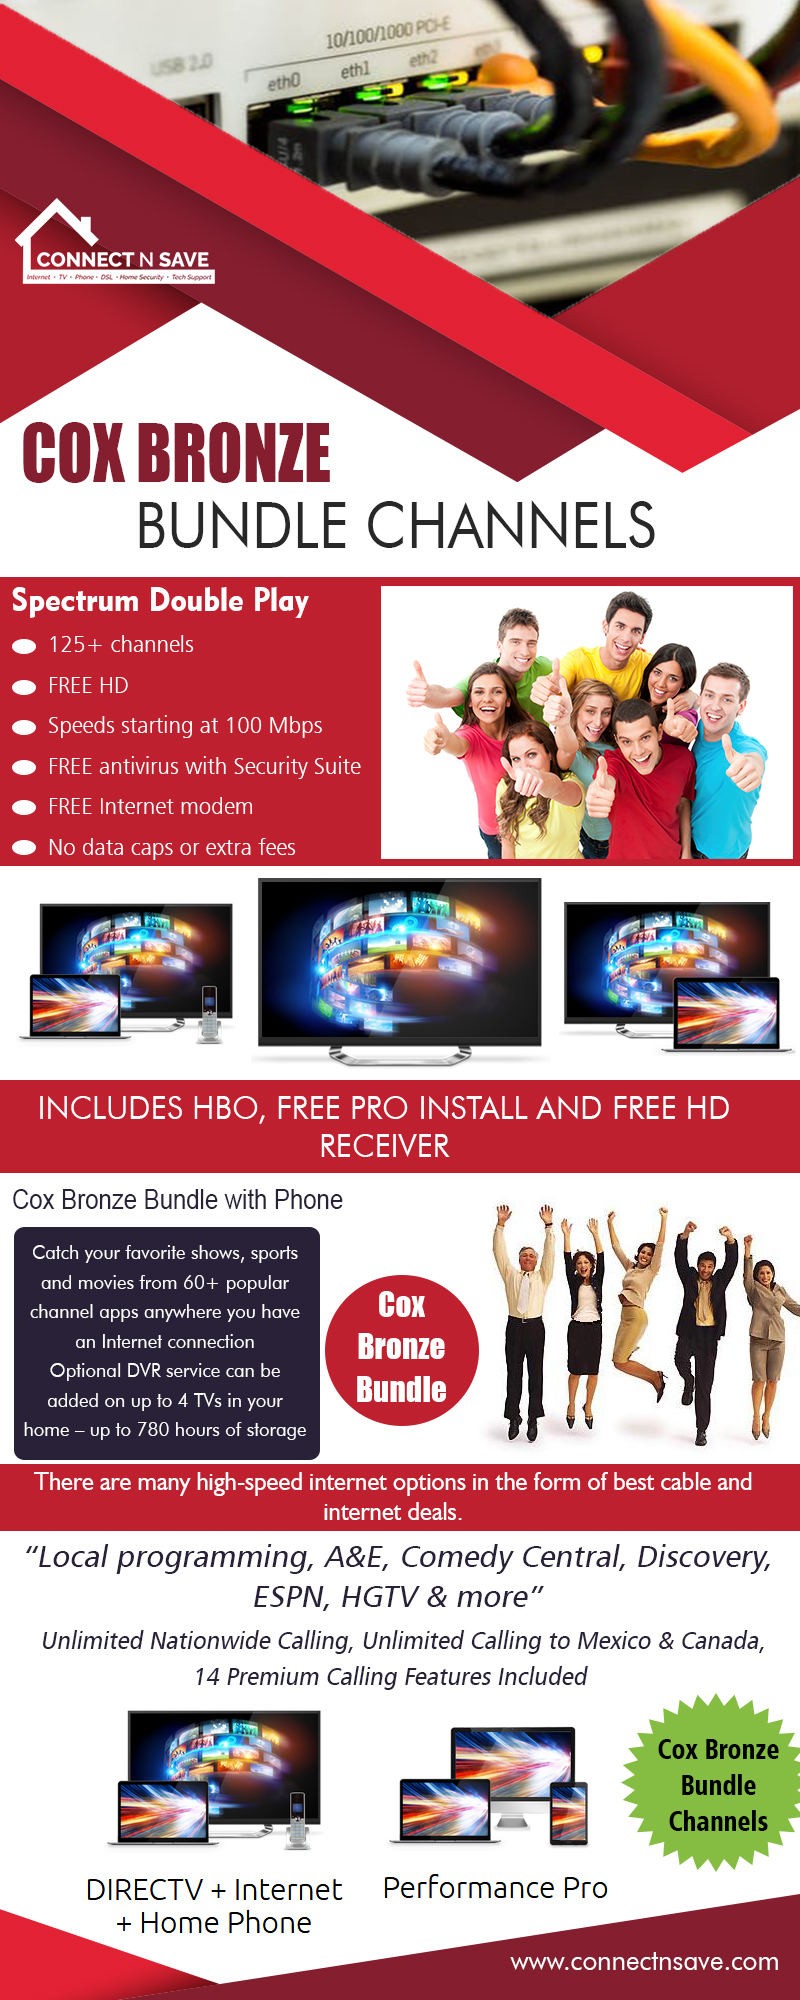 Cox Bronze Bundle Channels | 8554858733 | connectnsave.com